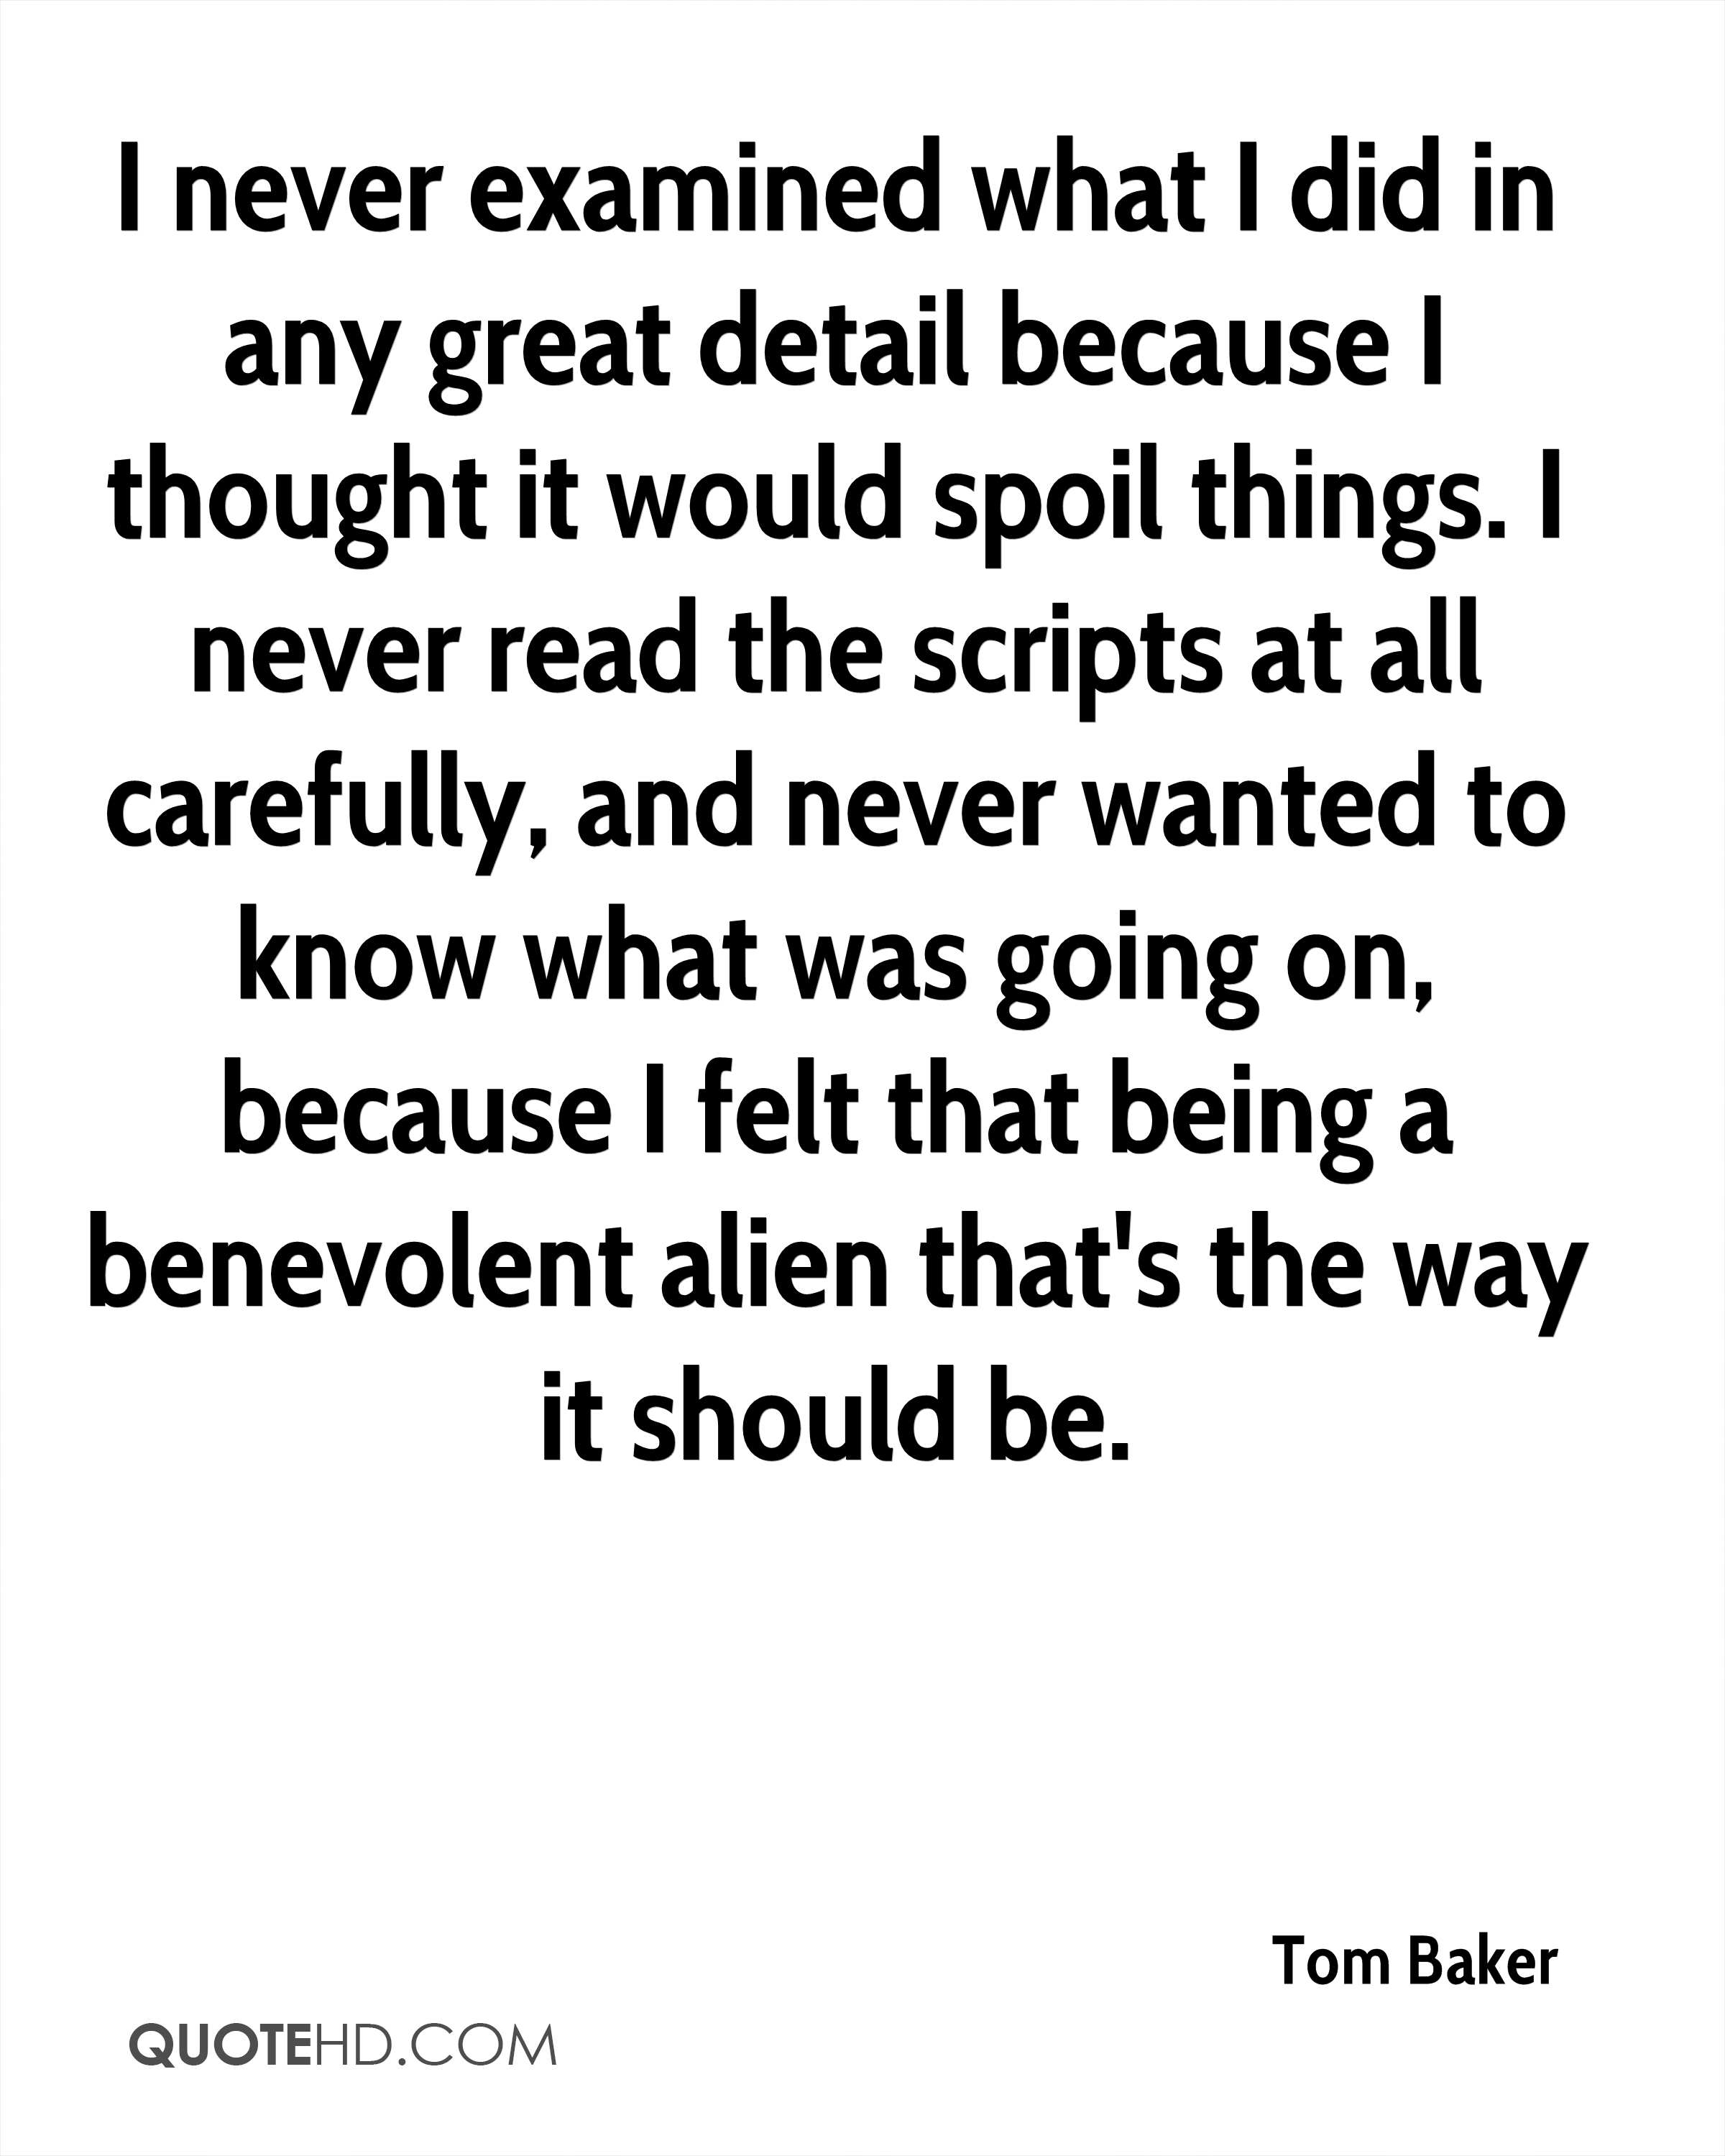 I never examined what I did in any great detail because I thought it would spoil things. I never read the scripts at all carefully, and never wanted to know what was going on, because I felt that being a benevolent alien that's the way it should be.